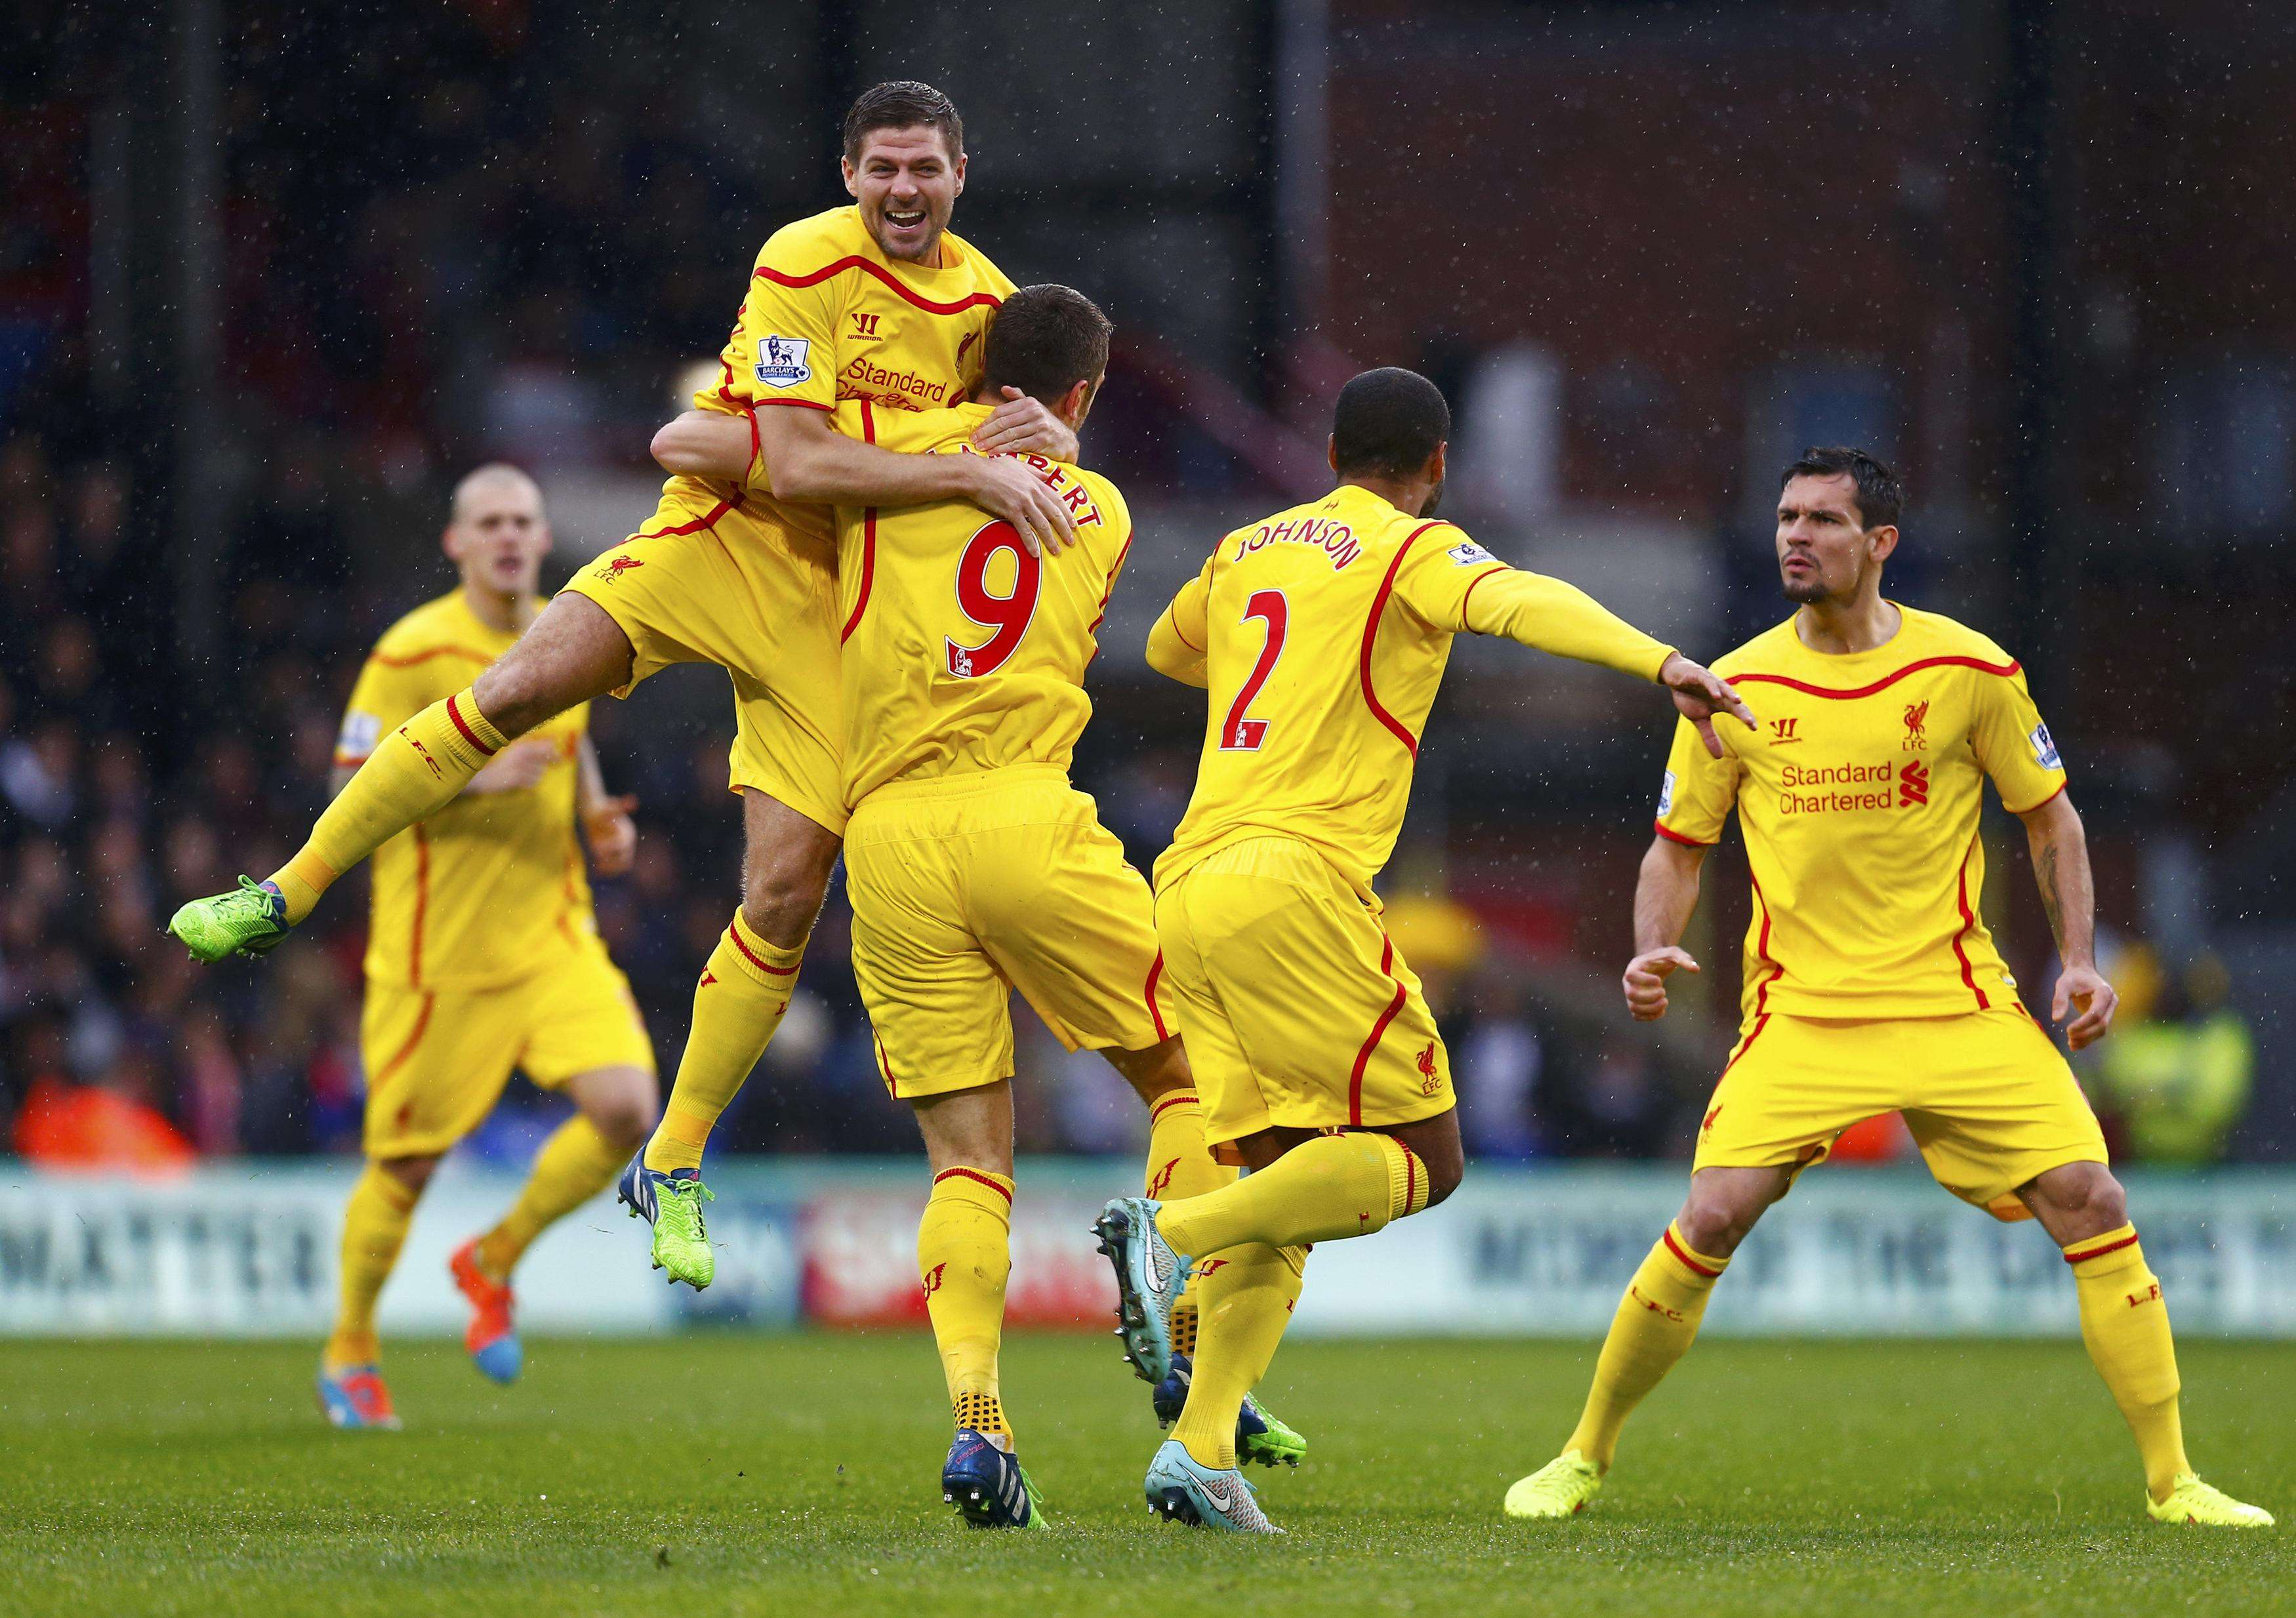 Liverpool's Steven Gerrard (2nd L) celebrates with team-mate Rickie Lambert (C) after Lambert scored a goal against Crystal Palace during their English Premier League soccer match at Selhurst Park in London November 23, 2014. REUTERS/Eddie Keogh (BRITAIN - Tags: SOCCER SPORT TPX IMAGES OF THE DAY) FOR EDITORIAL USE ONLY. NOT FOR SALE FOR MARKETING OR ADVERTISING CAMPAIGNS. EDITORIAL USE ONLY. NO USE WITH UNAUTHORIZED AUDIO, VIDEO, DATA, FIXTURE LISTS, CLUB/LEAGUE LOGOS OR 'LIVE' SERVICES. ONLINE IN-MATCH USE LIMITED TO 45 IMAGES, NO VIDEO EMULATION. NO USE IN BETTING, GAMES OR SINGLE CLUB/LEAGUE/PLAYER PUBLICATIONS. Foto: EDDIE KEOGH/REUTERS